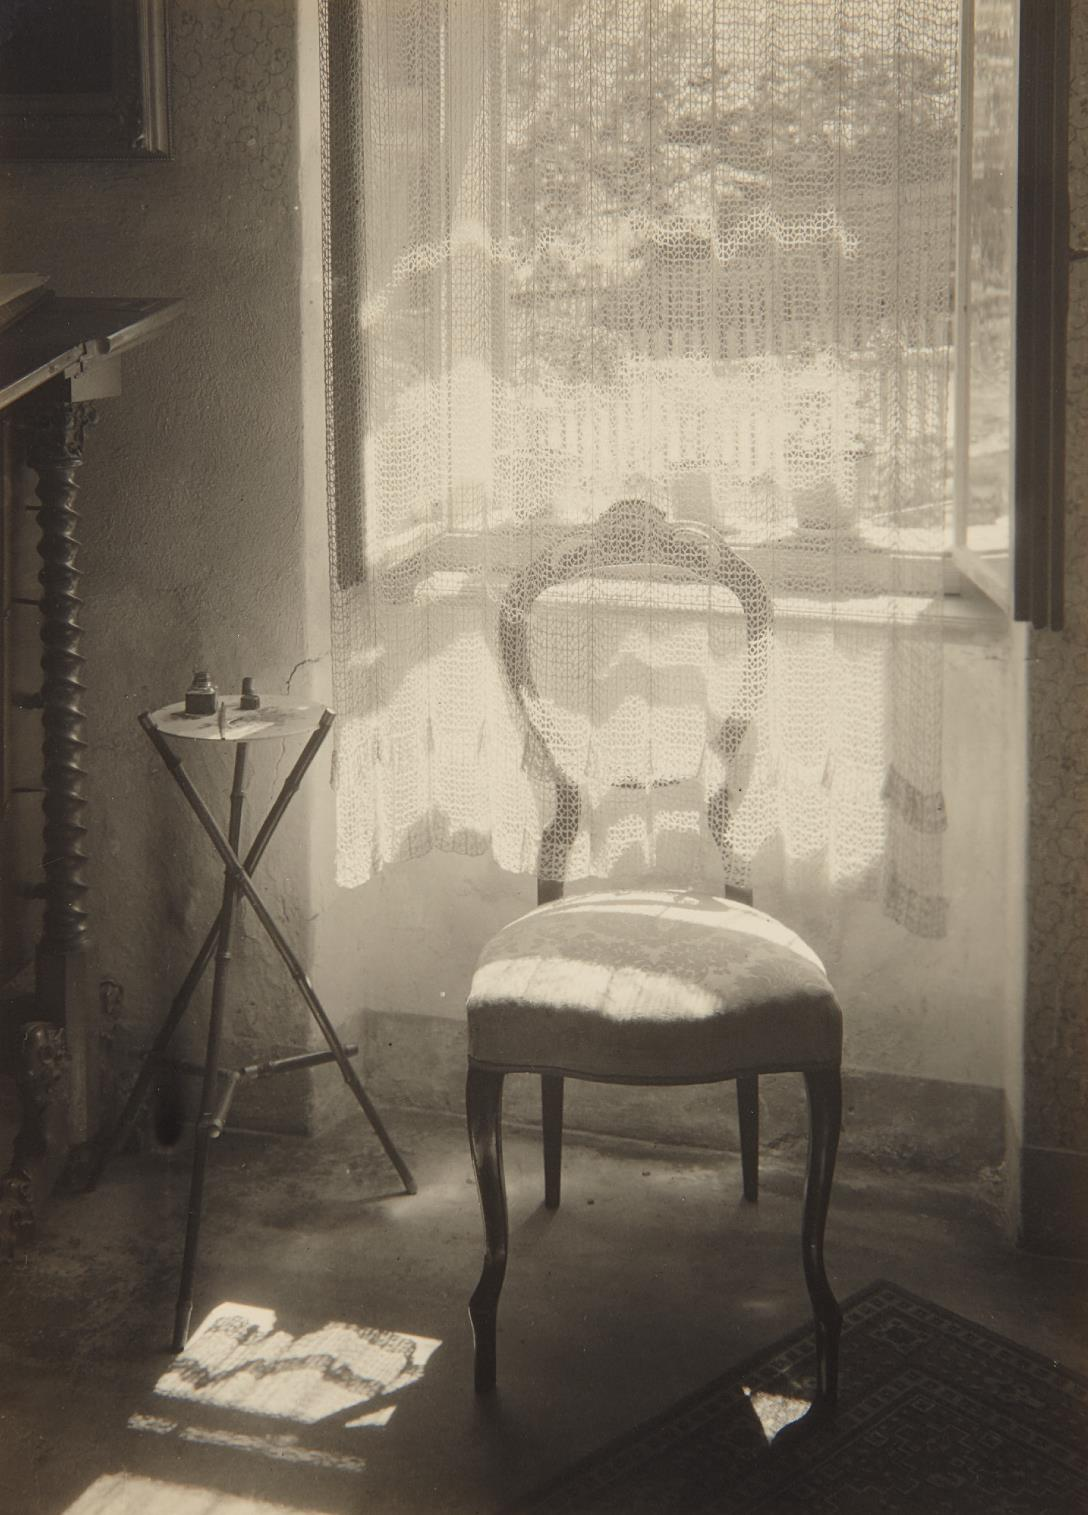 Josef Sudek-At The Janacek's-1948